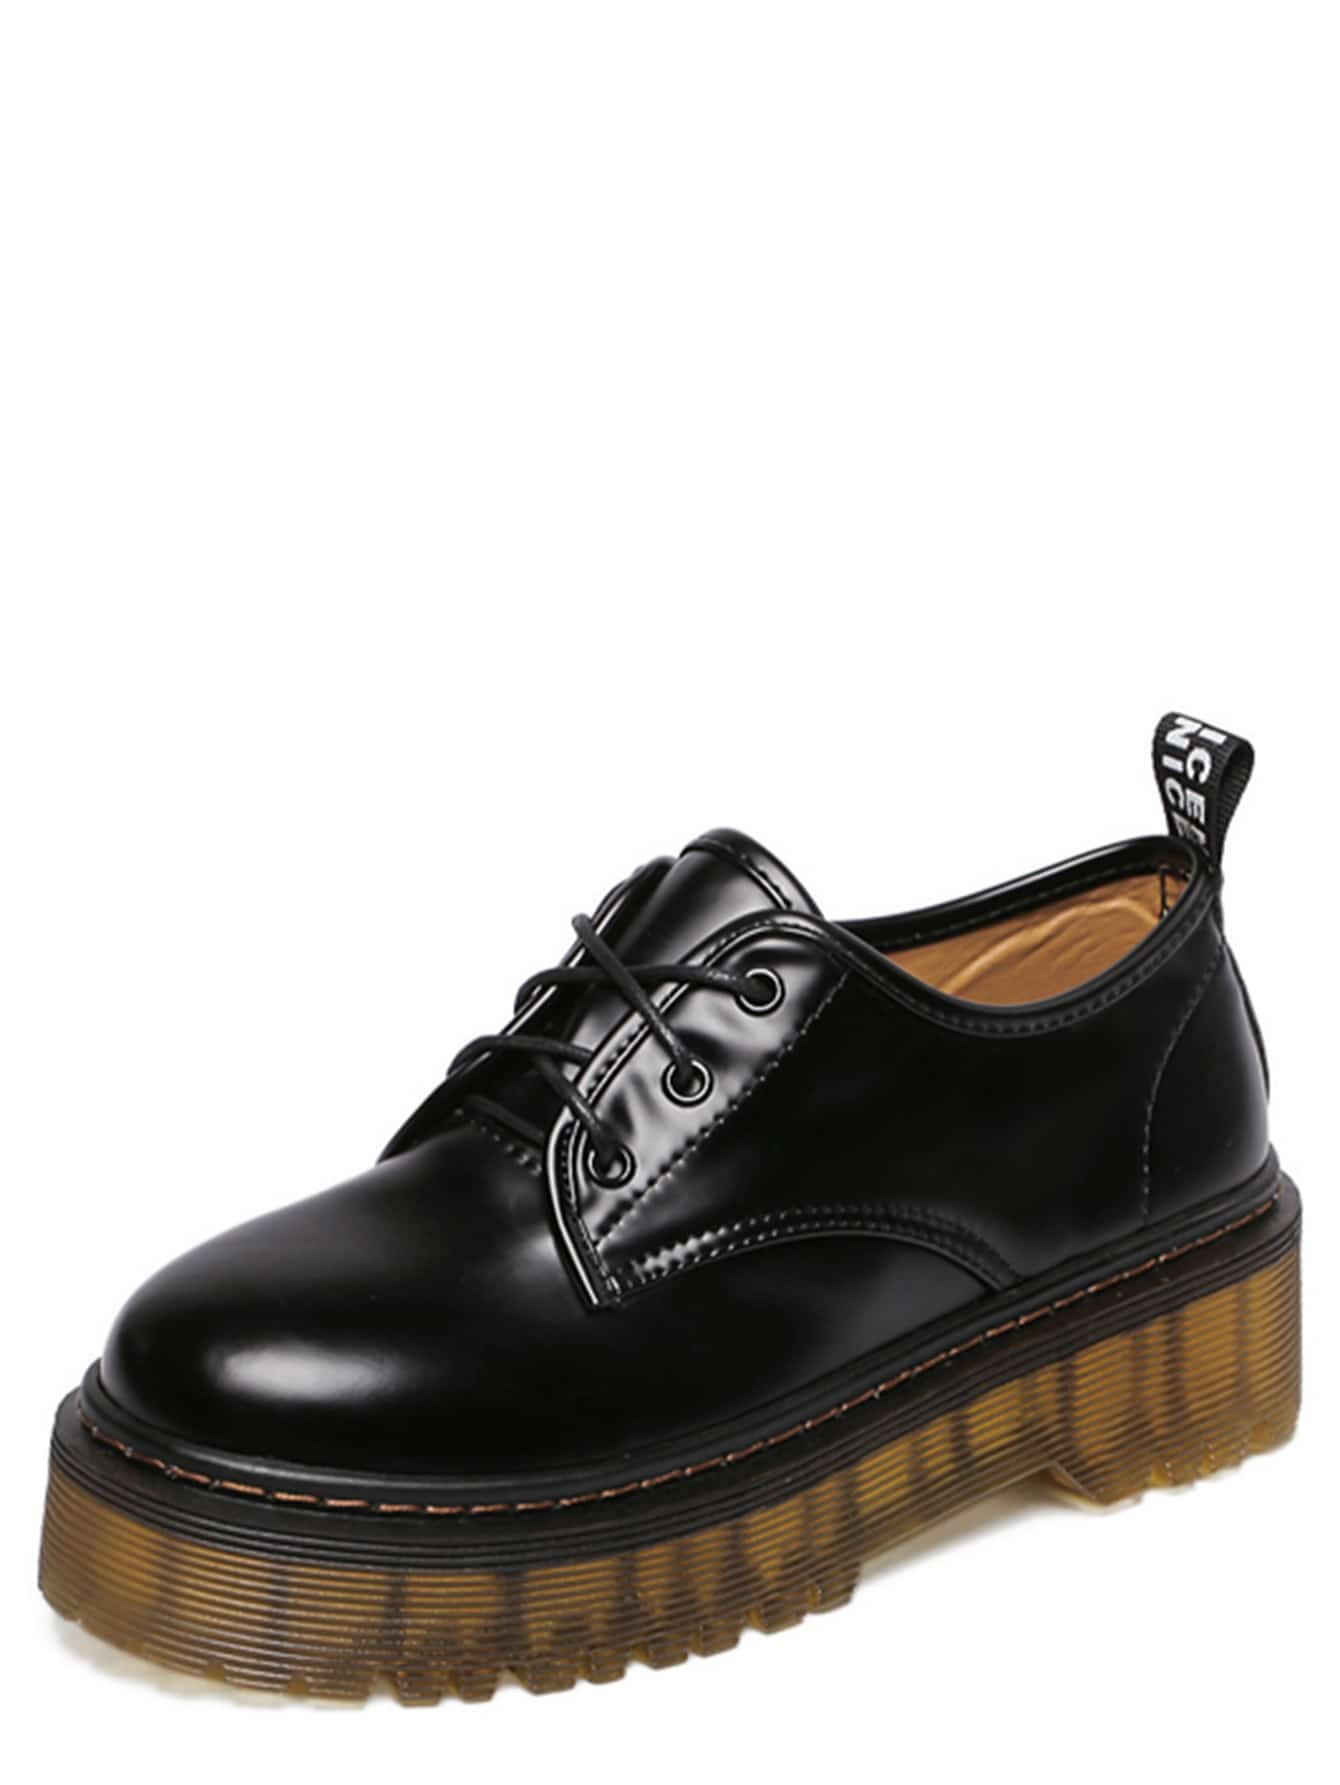 black toe lace up rubber soled shoes shein sheinside